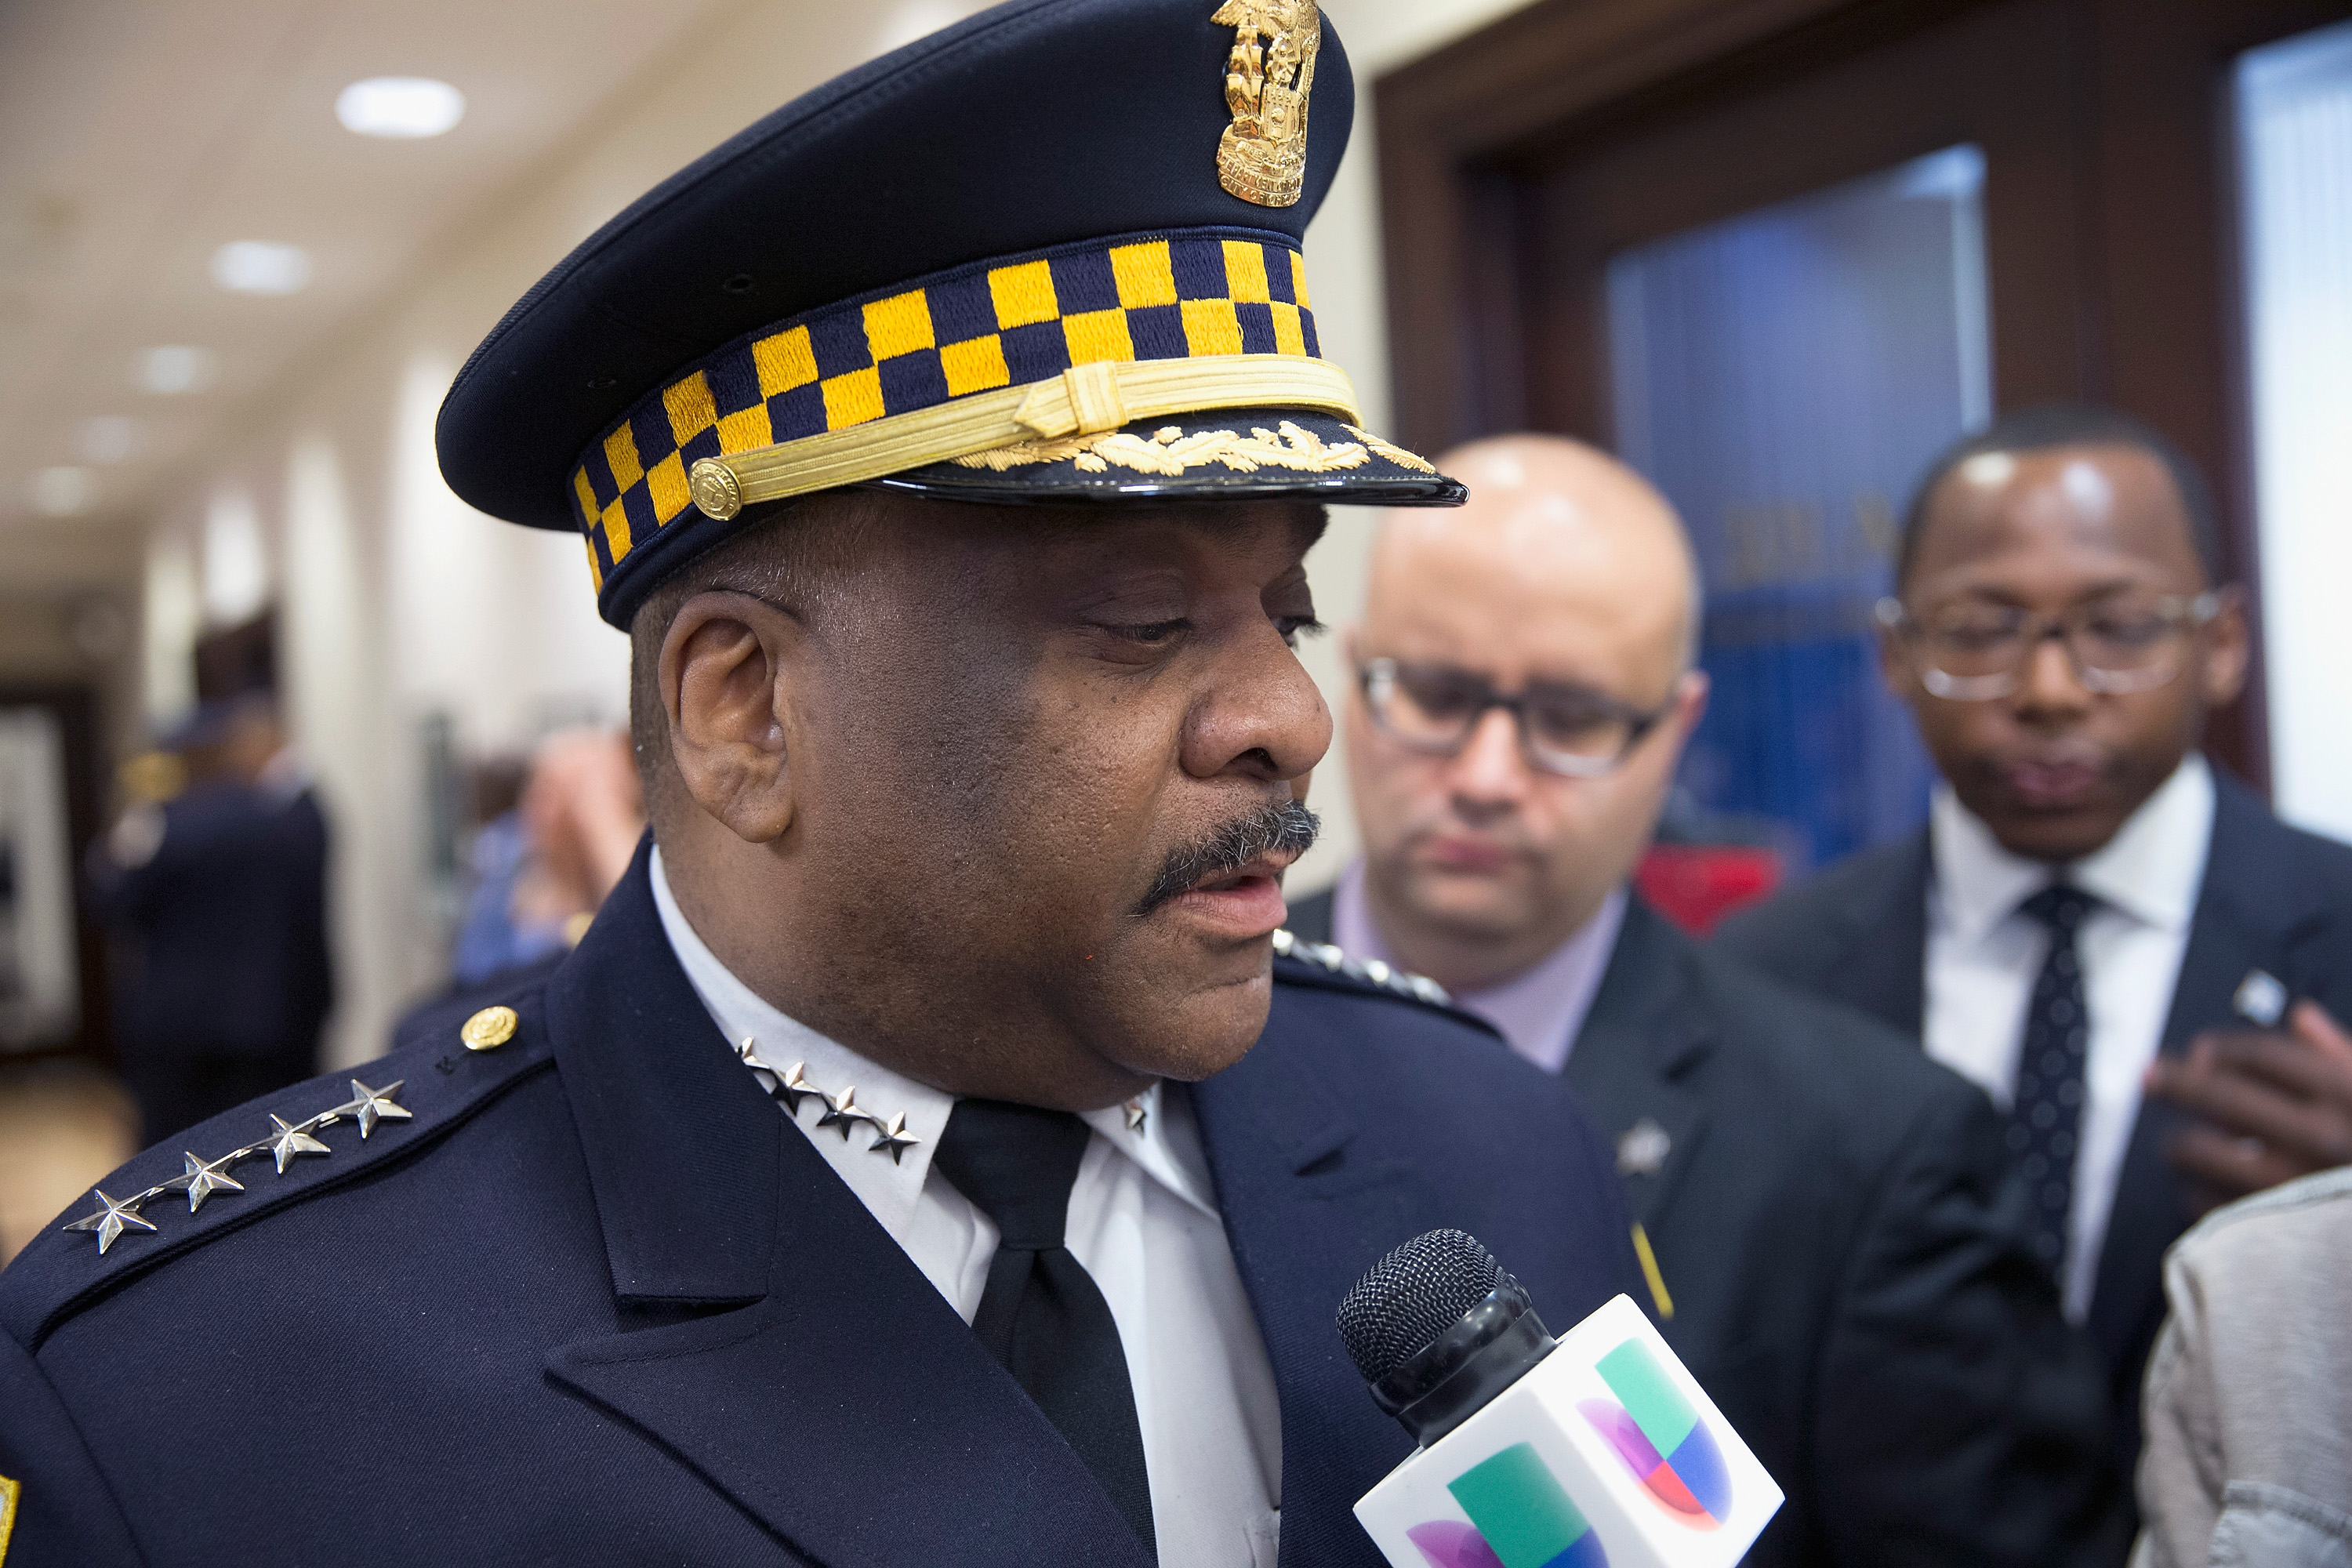 Eddie Johnson speaks to the press after being sworn in as Chicago Police Superintendent on April 13, 2016 in Chicago, Illinois.